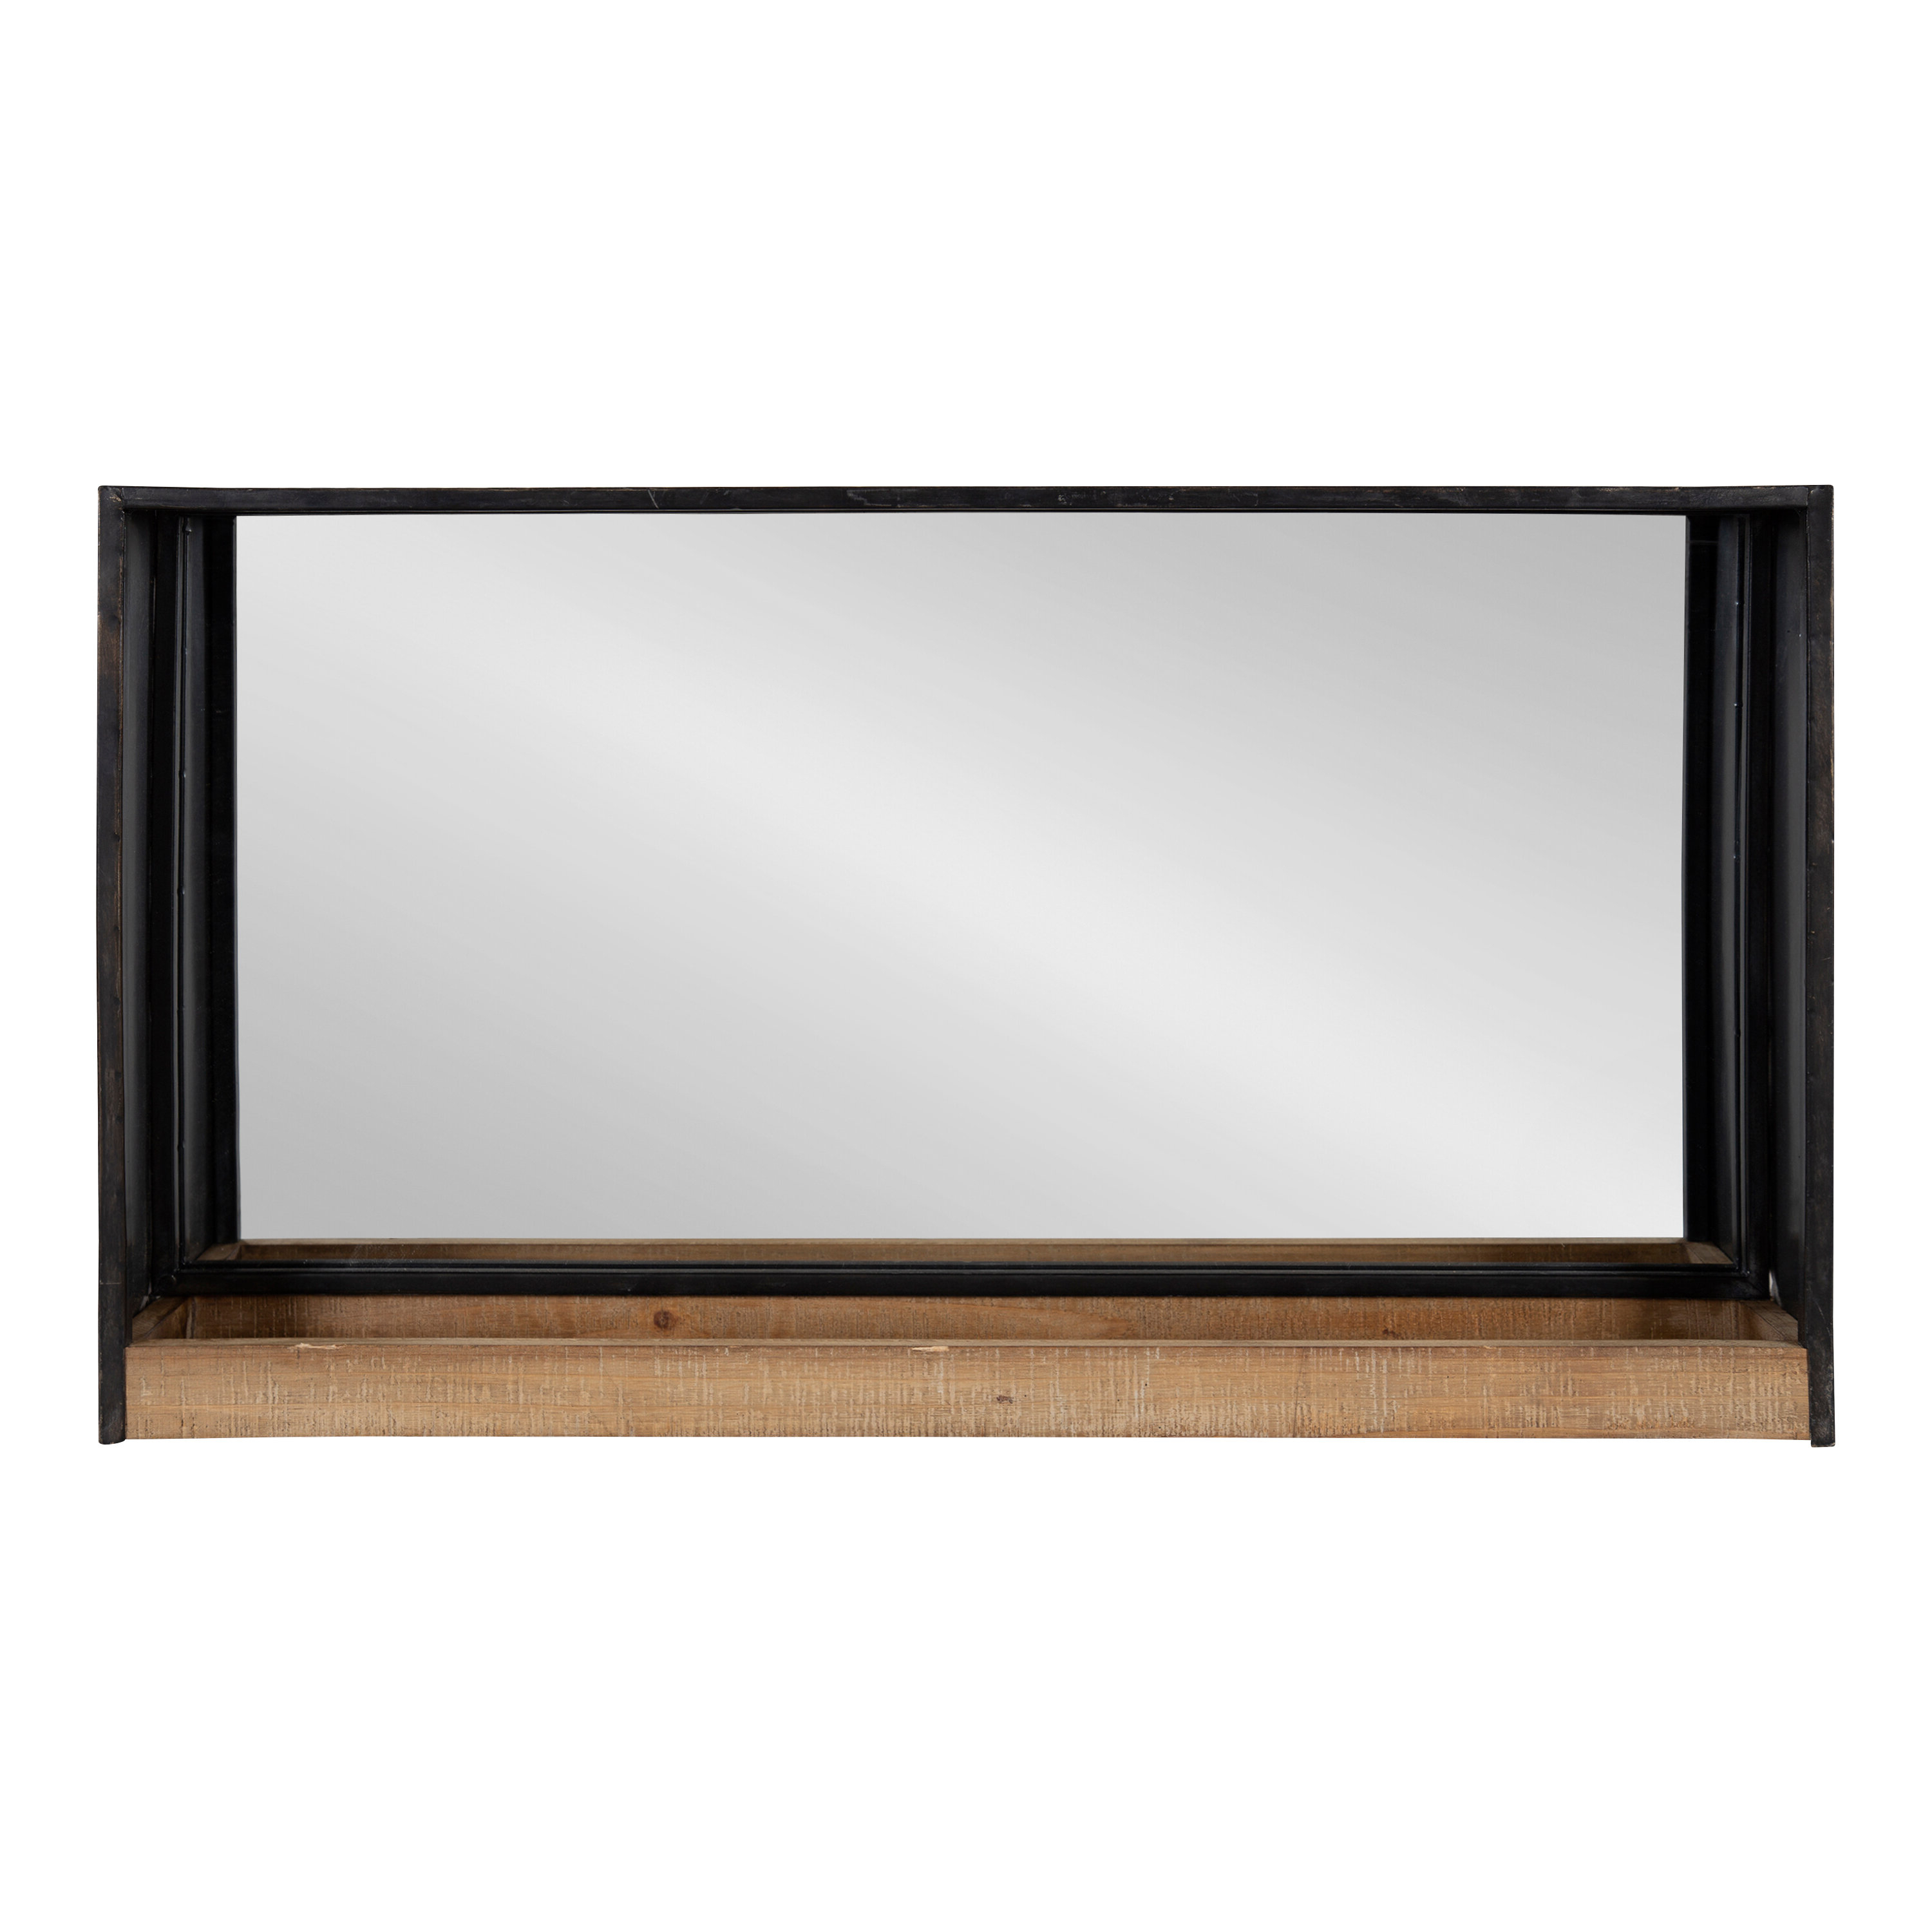 Shildon Beveled Accent Mirrors In Preferred Coelho Casual Modern Beveled With Shelf Accent Mirror (View 14 of 20)